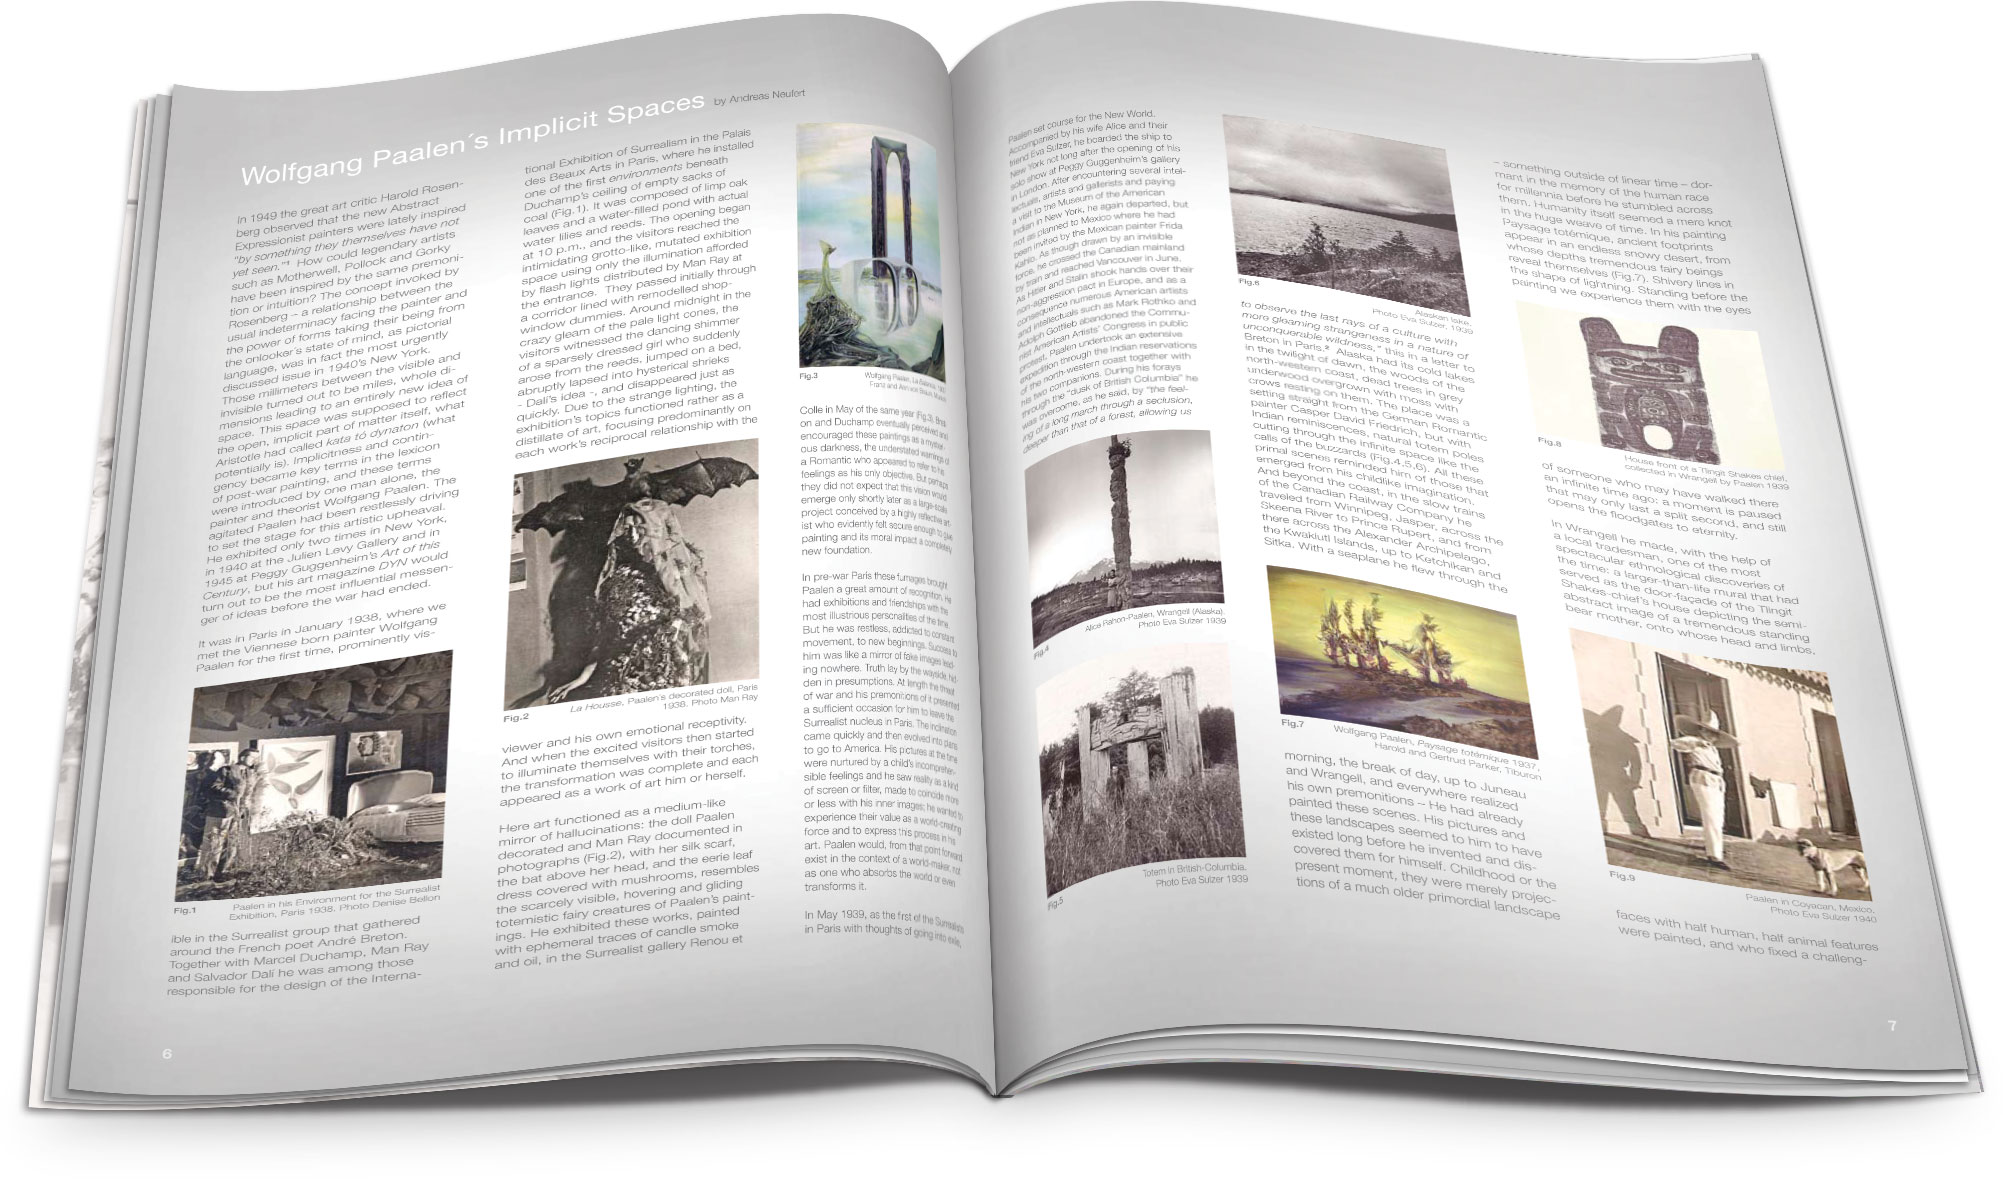 Project: Art exhibition catalog design for an art gallery